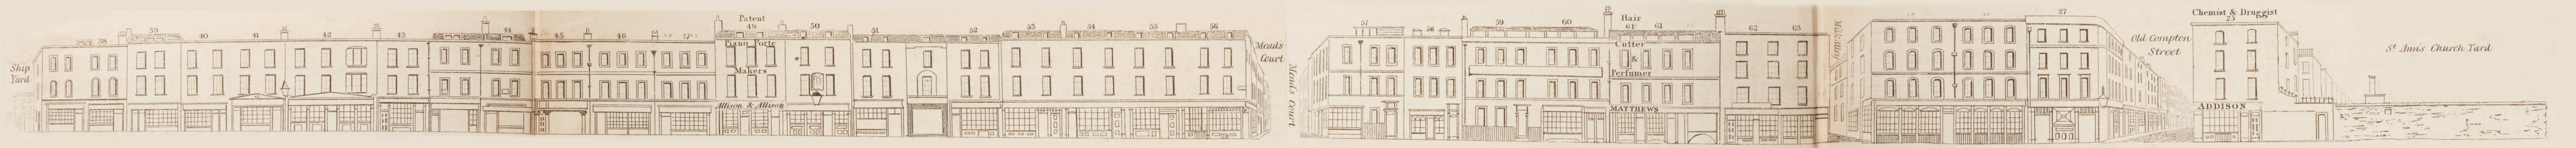 map - Tallis's London street views : No. 63. Wardour Street, division 2 (east)